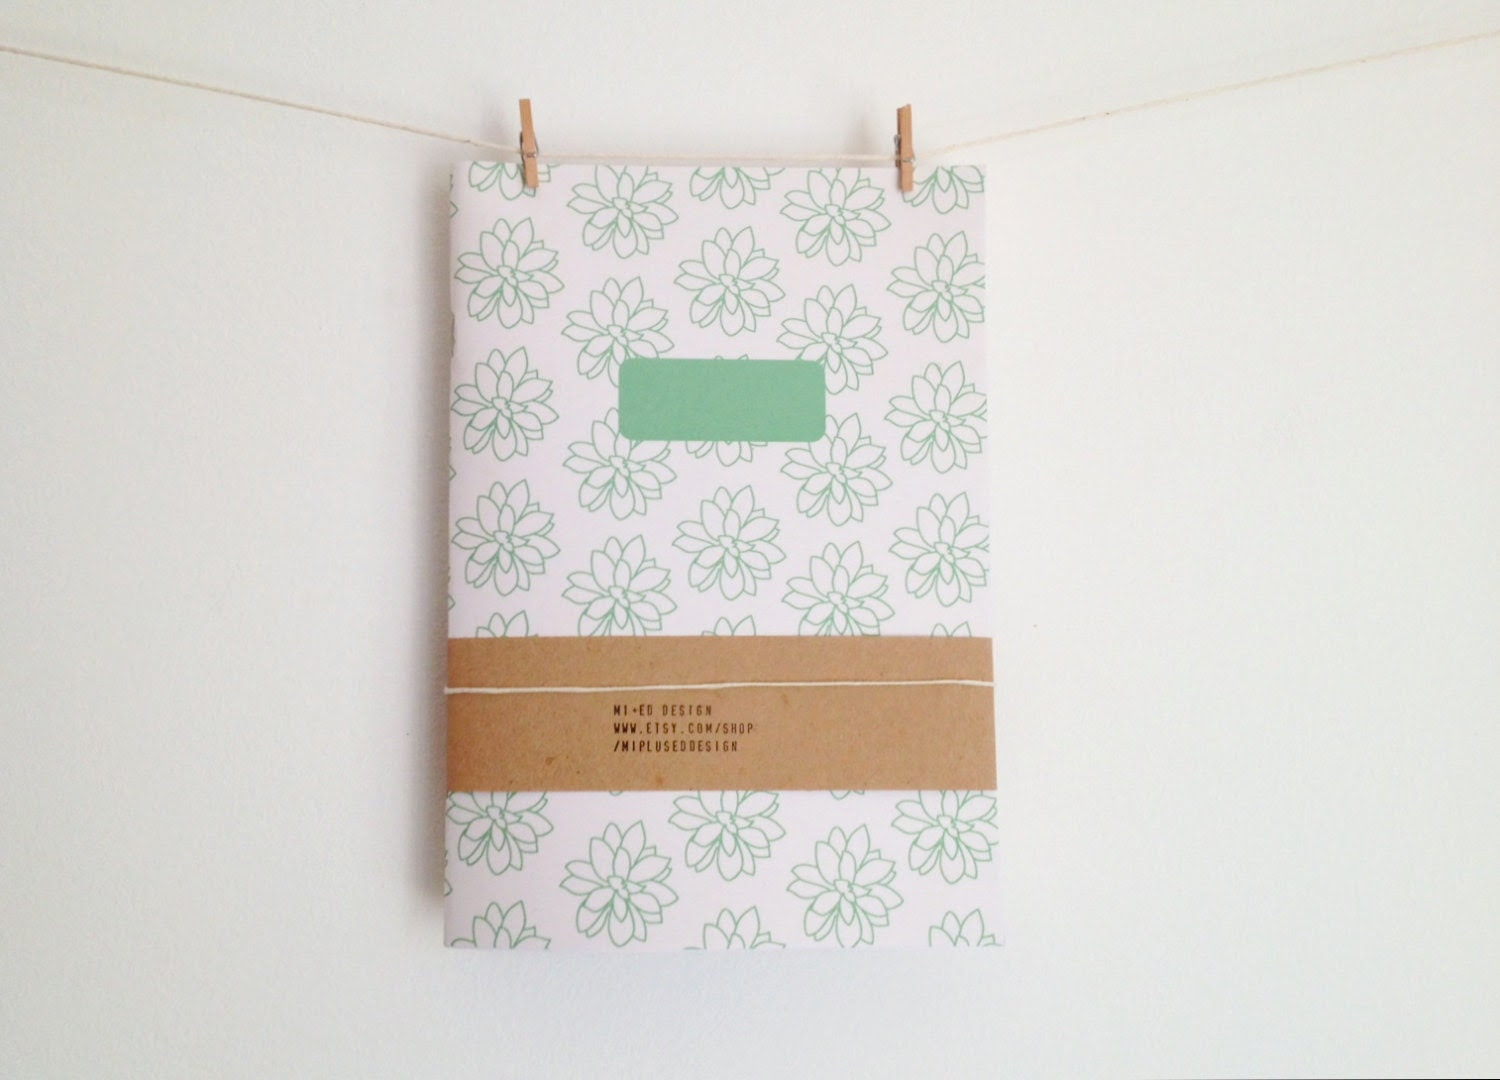 Notebook Journal with Succulent Pattern in Green, Gardening Journal, School Notebook